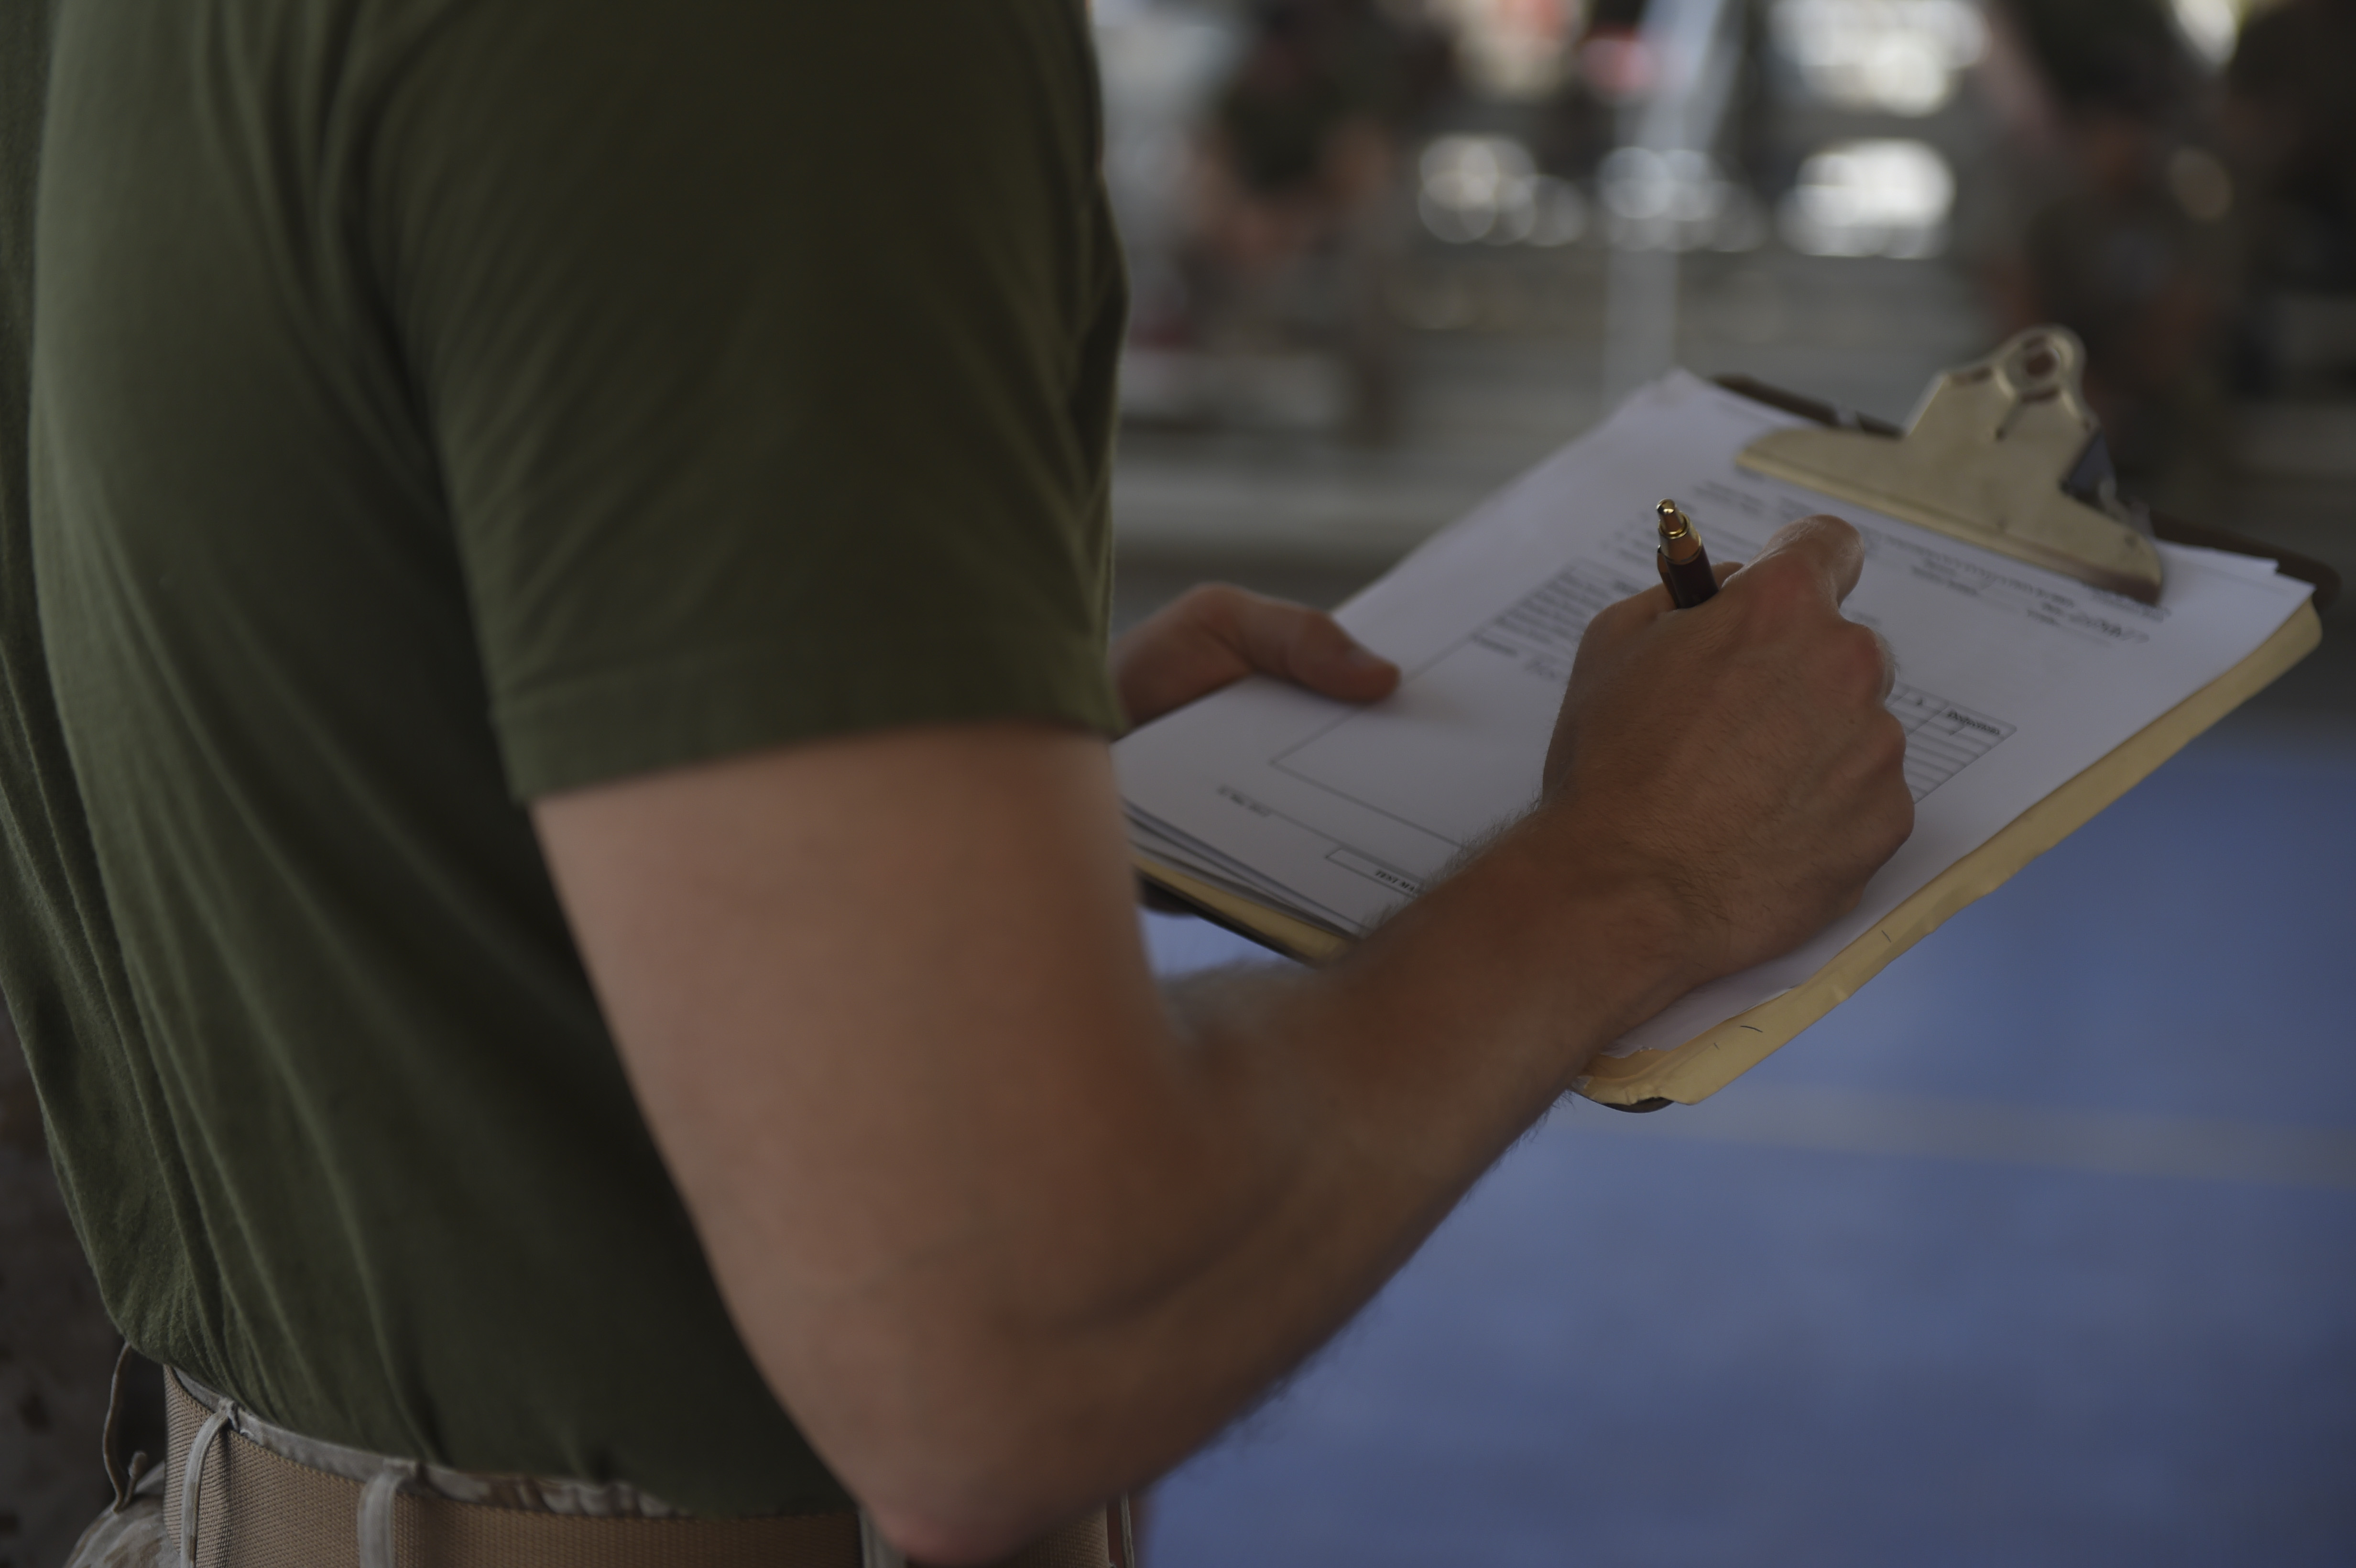 U.S. Marine Corps Sgt. Matthew White, assigned to Combined Joint Task Force-Horn of Africa, marks an evaluation score for a student during the Corporal's Course at Camp Lemonnier, Djibouti, May 24, 2017. A partnered effort between the Marine Corps Element and CJTF-HOA, the Corporals' Leadership Development Course is a professional military education program traditionally for Marine Corps Corporals that places emphasis on basic leadership skills. (U.S. Air Force photo by Staff Sgt. Eboni Prince)